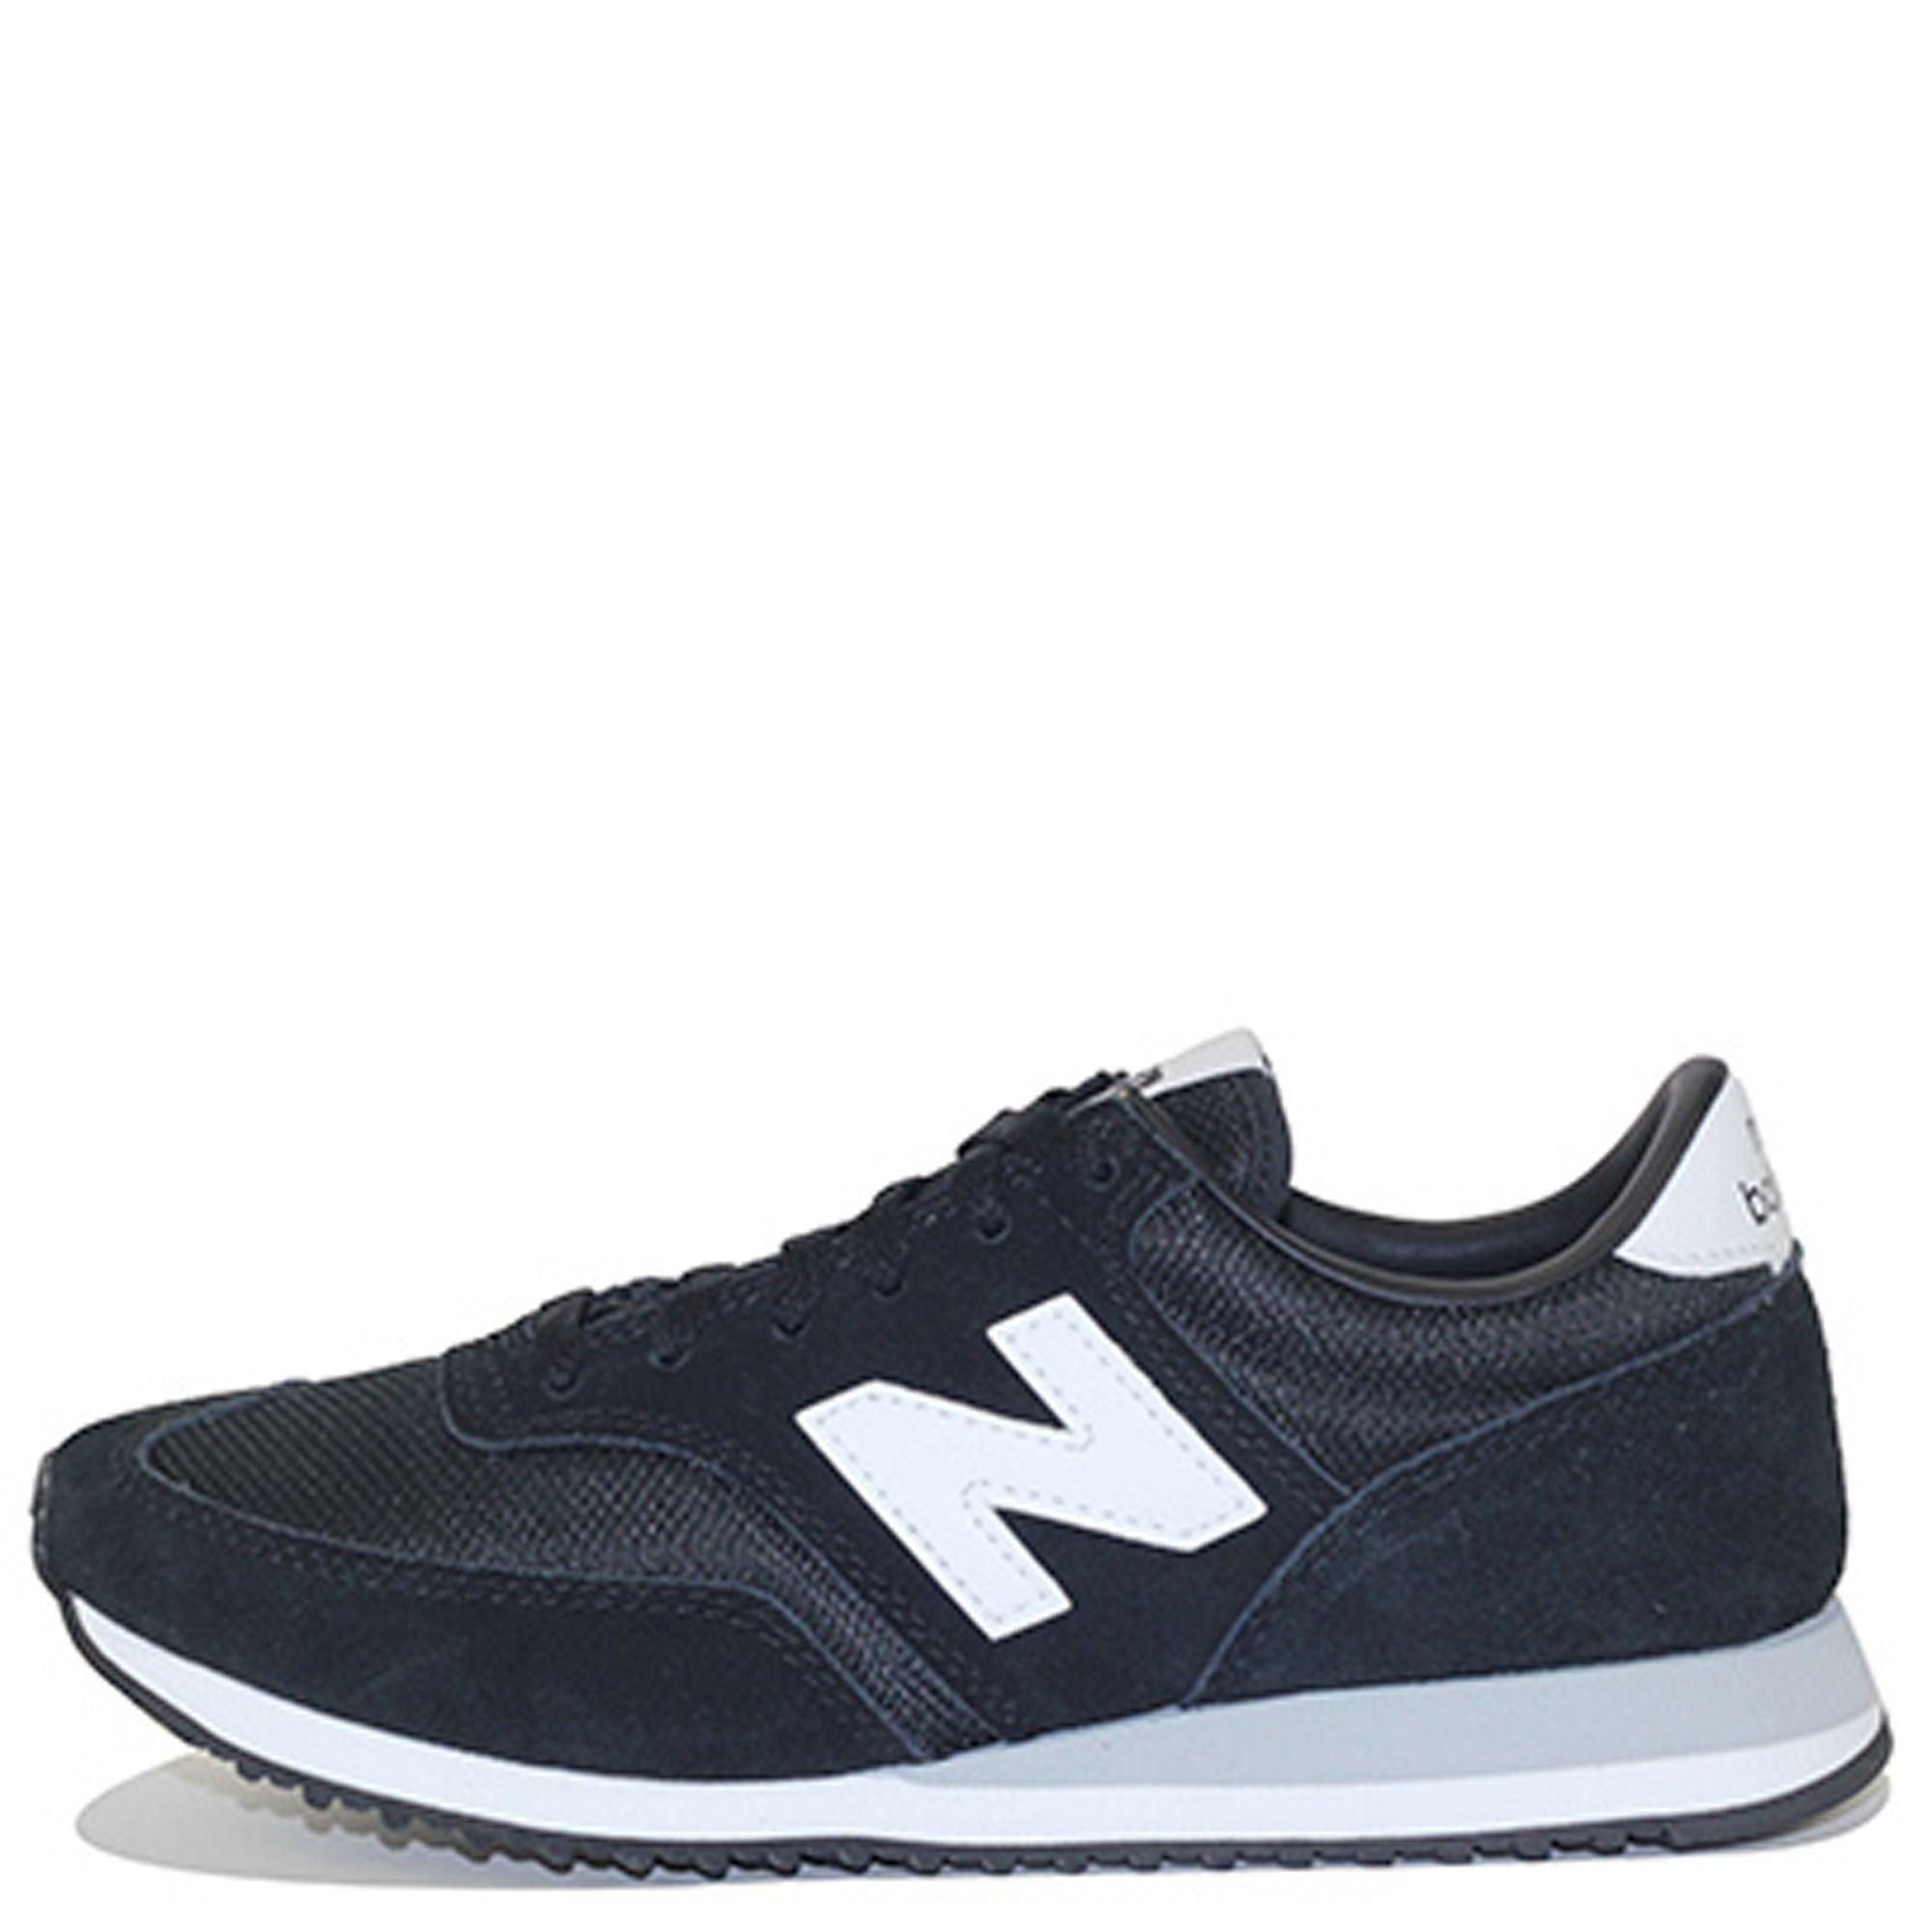 New Balance for Women: 620 Classic Black Sneakers BLACK